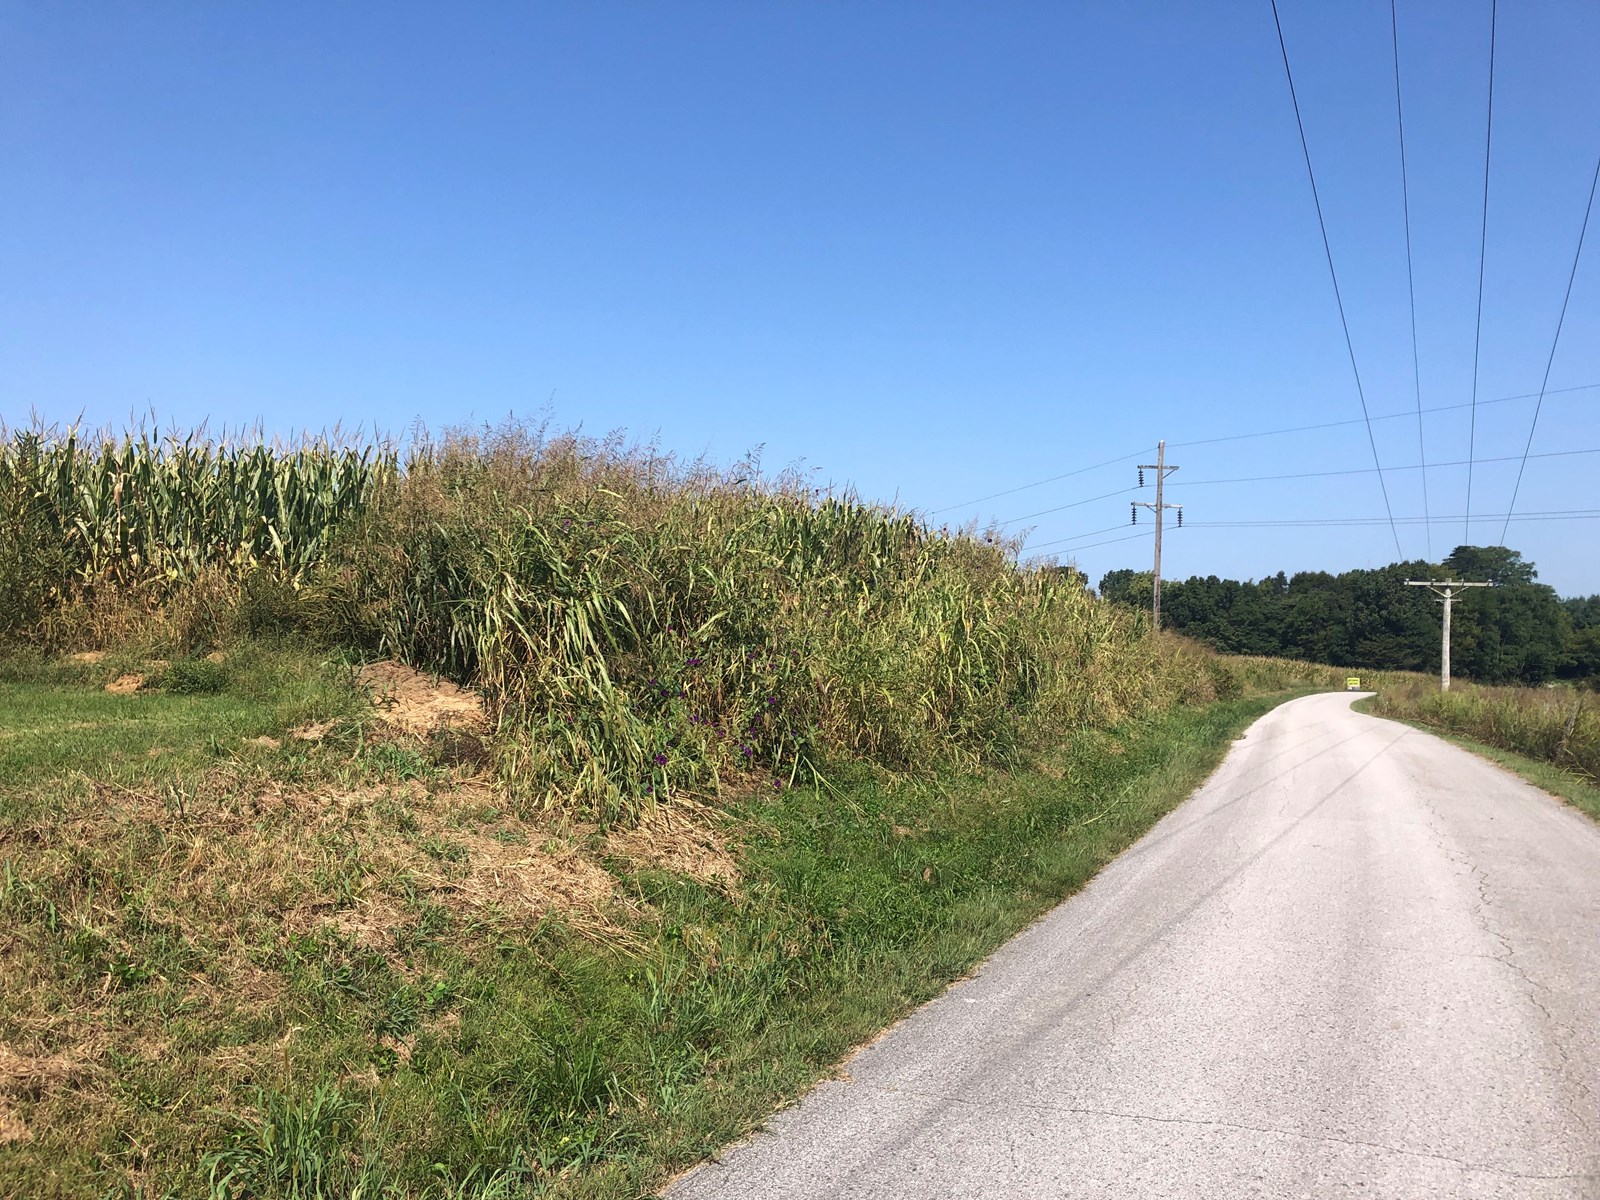 18.98 of Warren Co. & Smiths Grove Ky. Land offered in 3 Tracts @ Auction